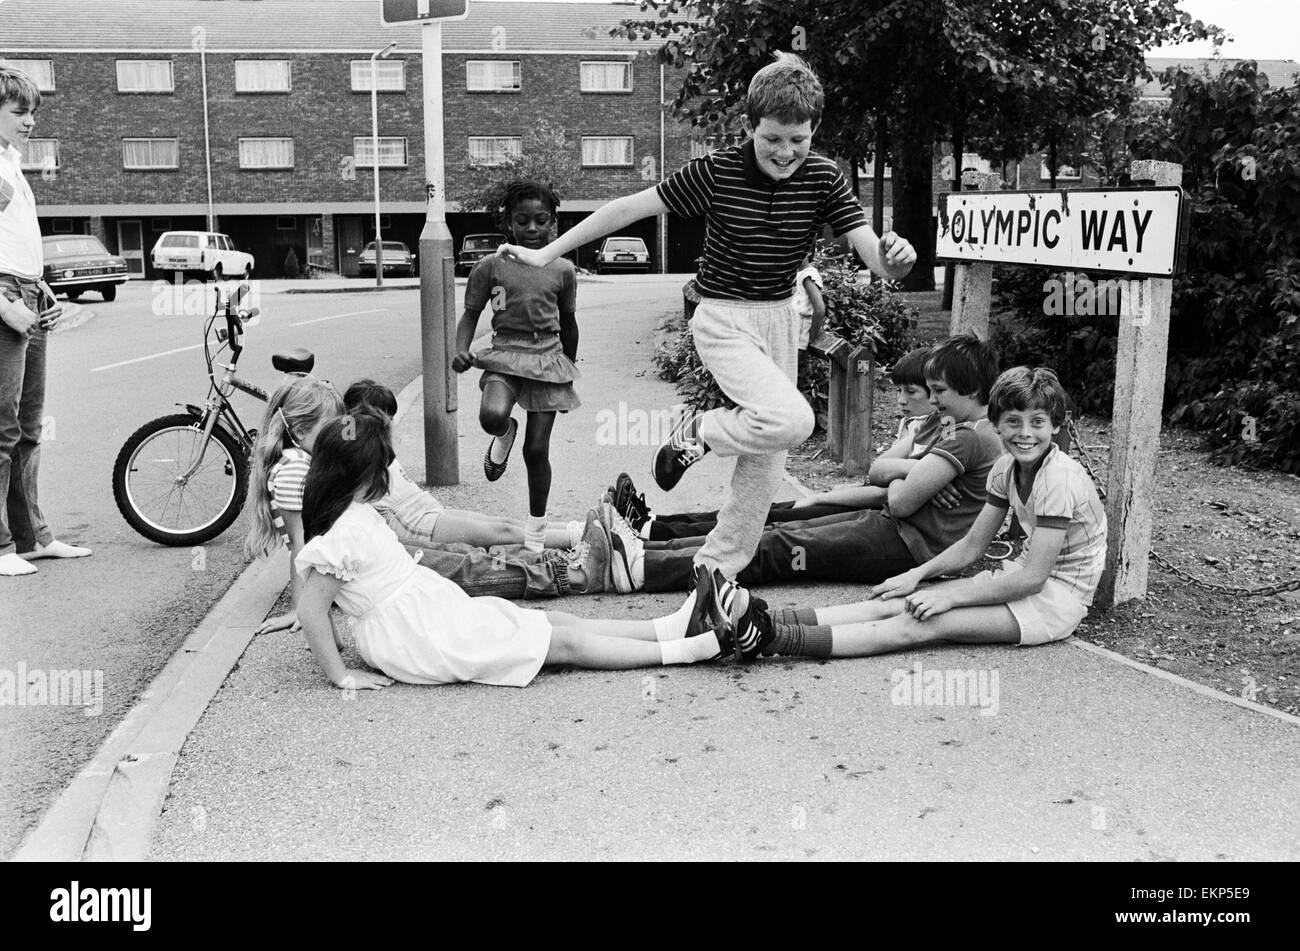 Children of Olympic Way in London, playing a game on the streets outside their homes. 4th August 1984. Stock Photo